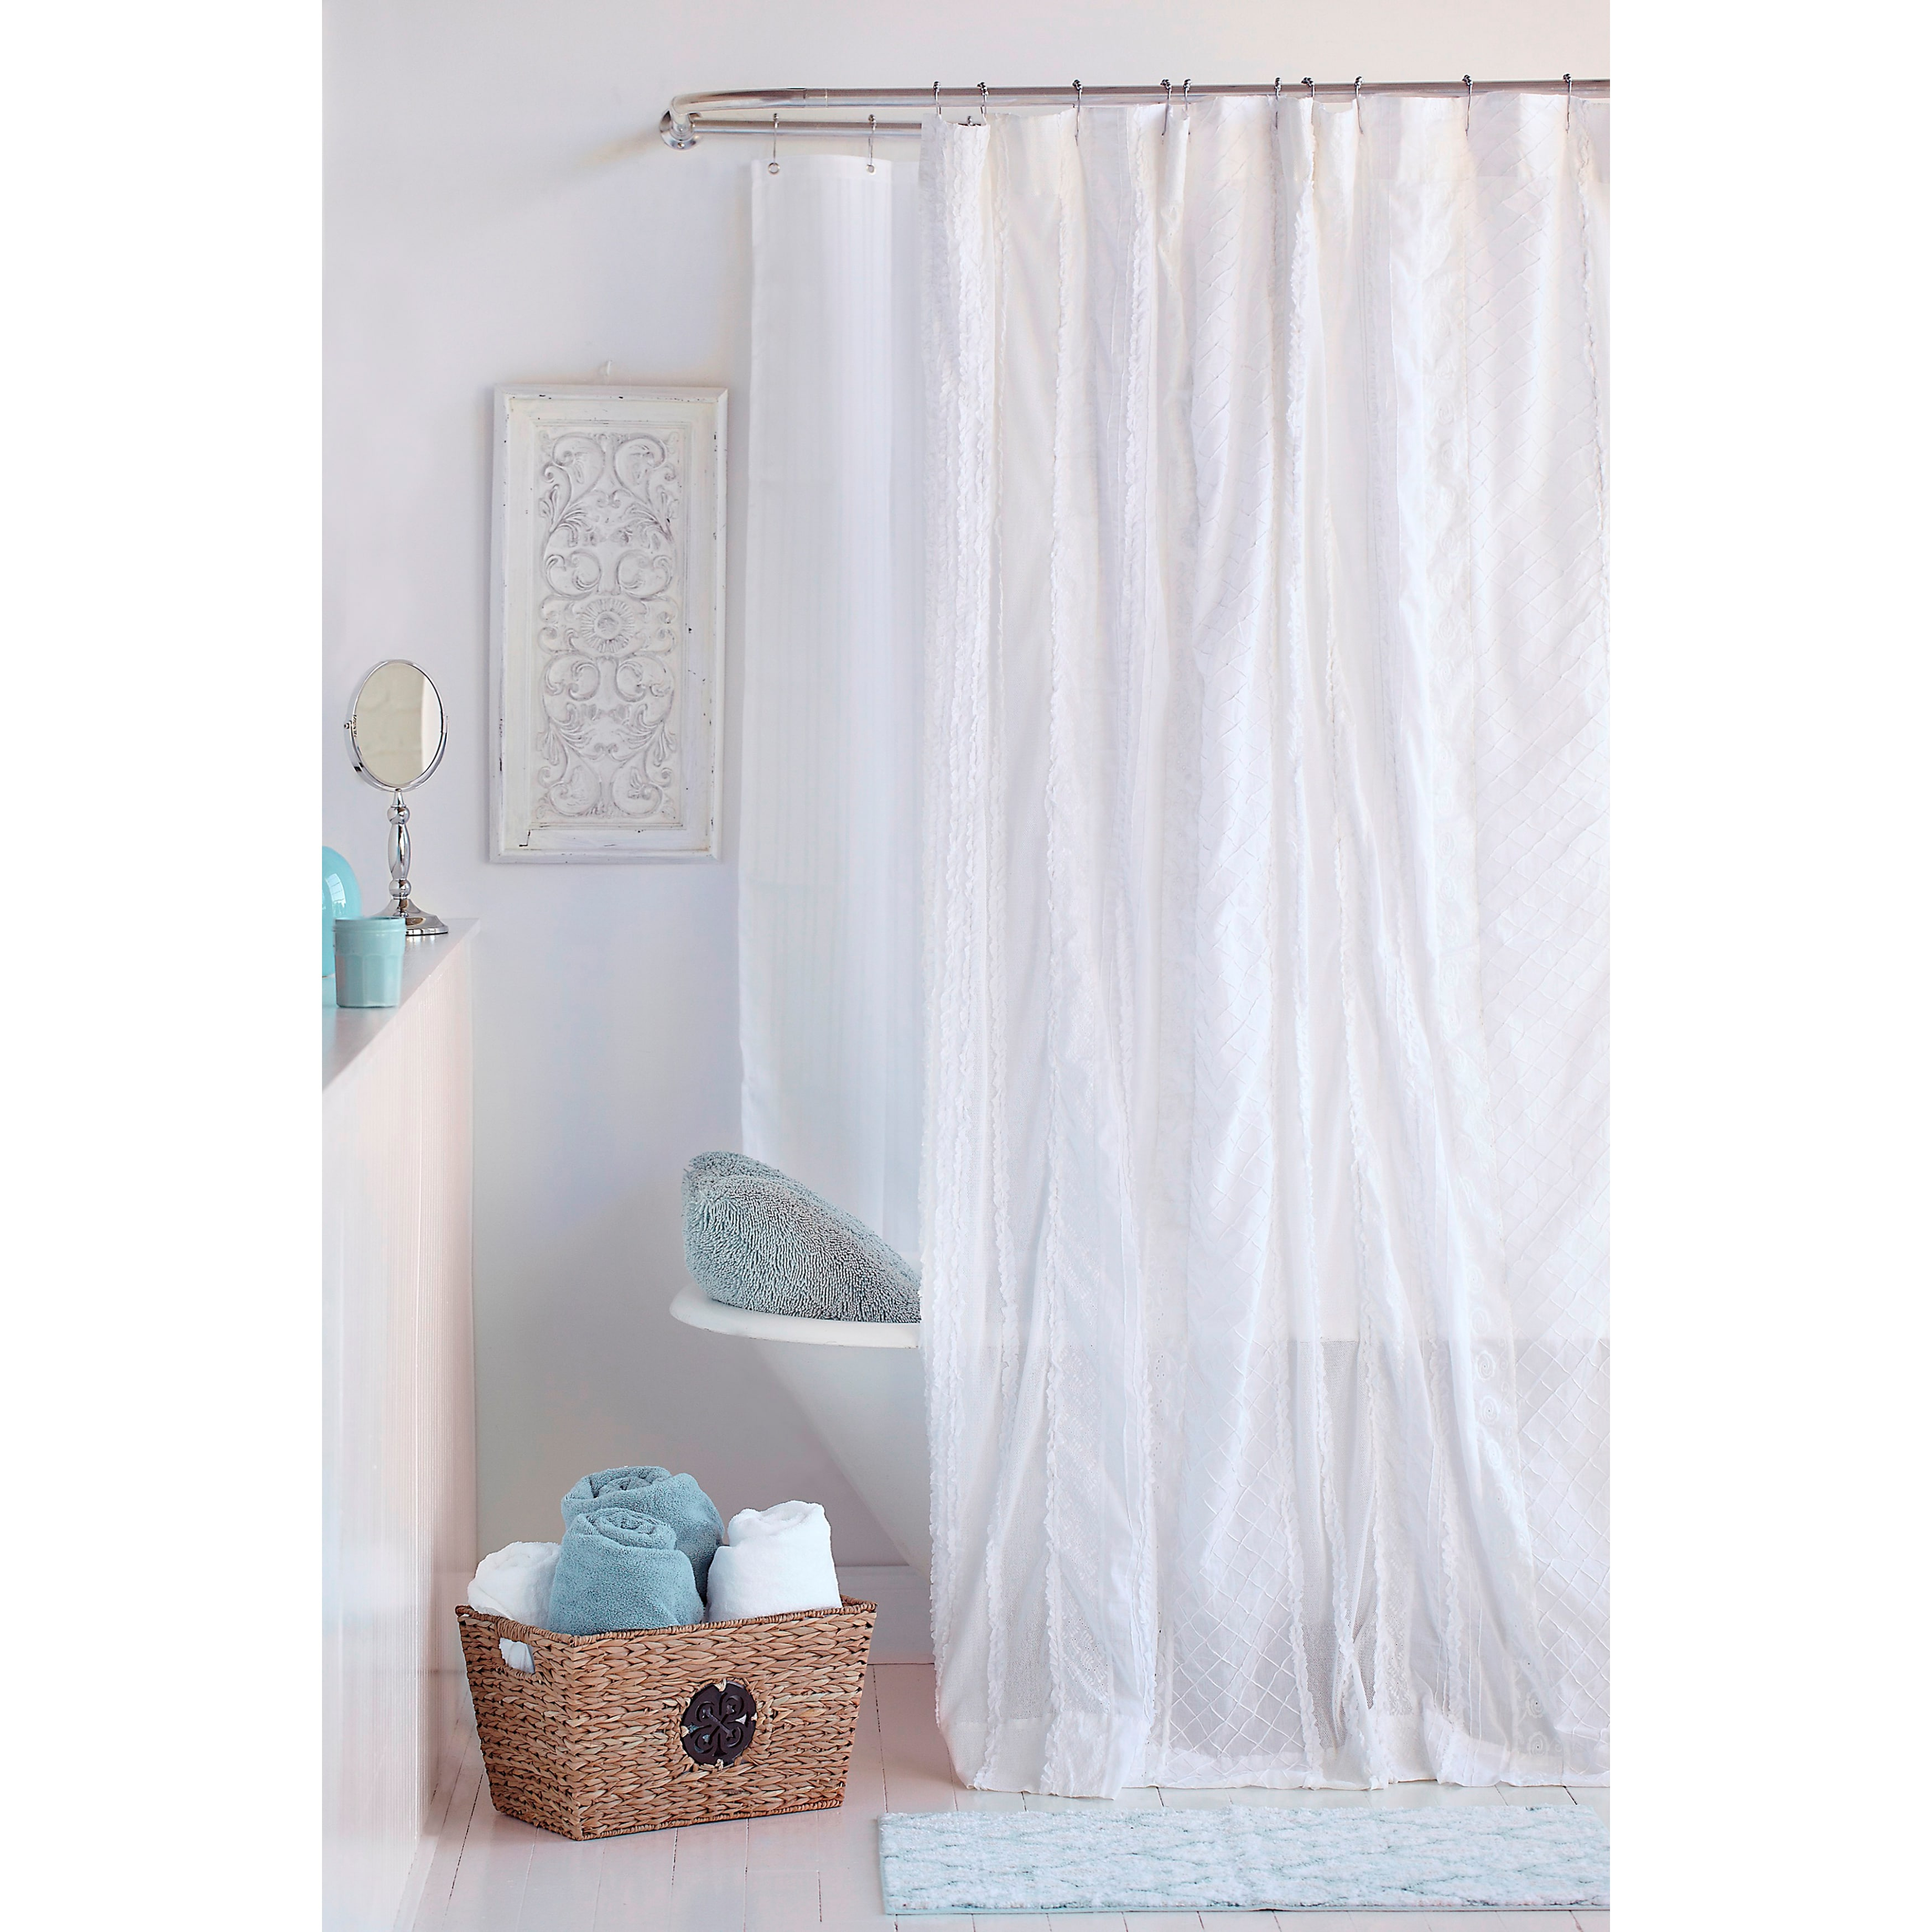 White Eyelet Shower Curtain Blankets Throws Ideas Inspirations pertaining to sizing 3492 X 3492